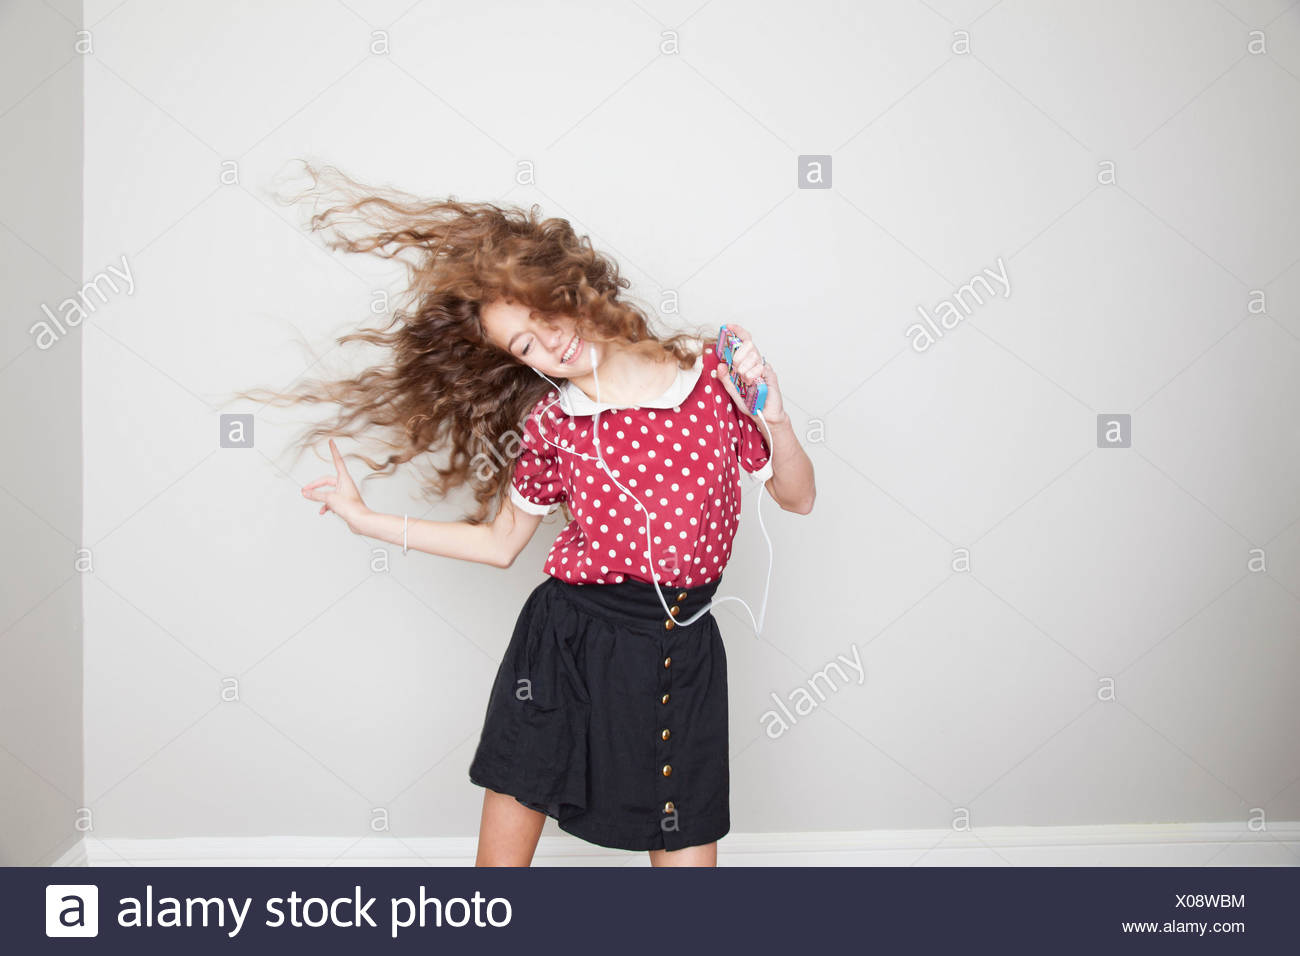 Girl wearing headphones, dancing and holding mp3 player - Stock Image